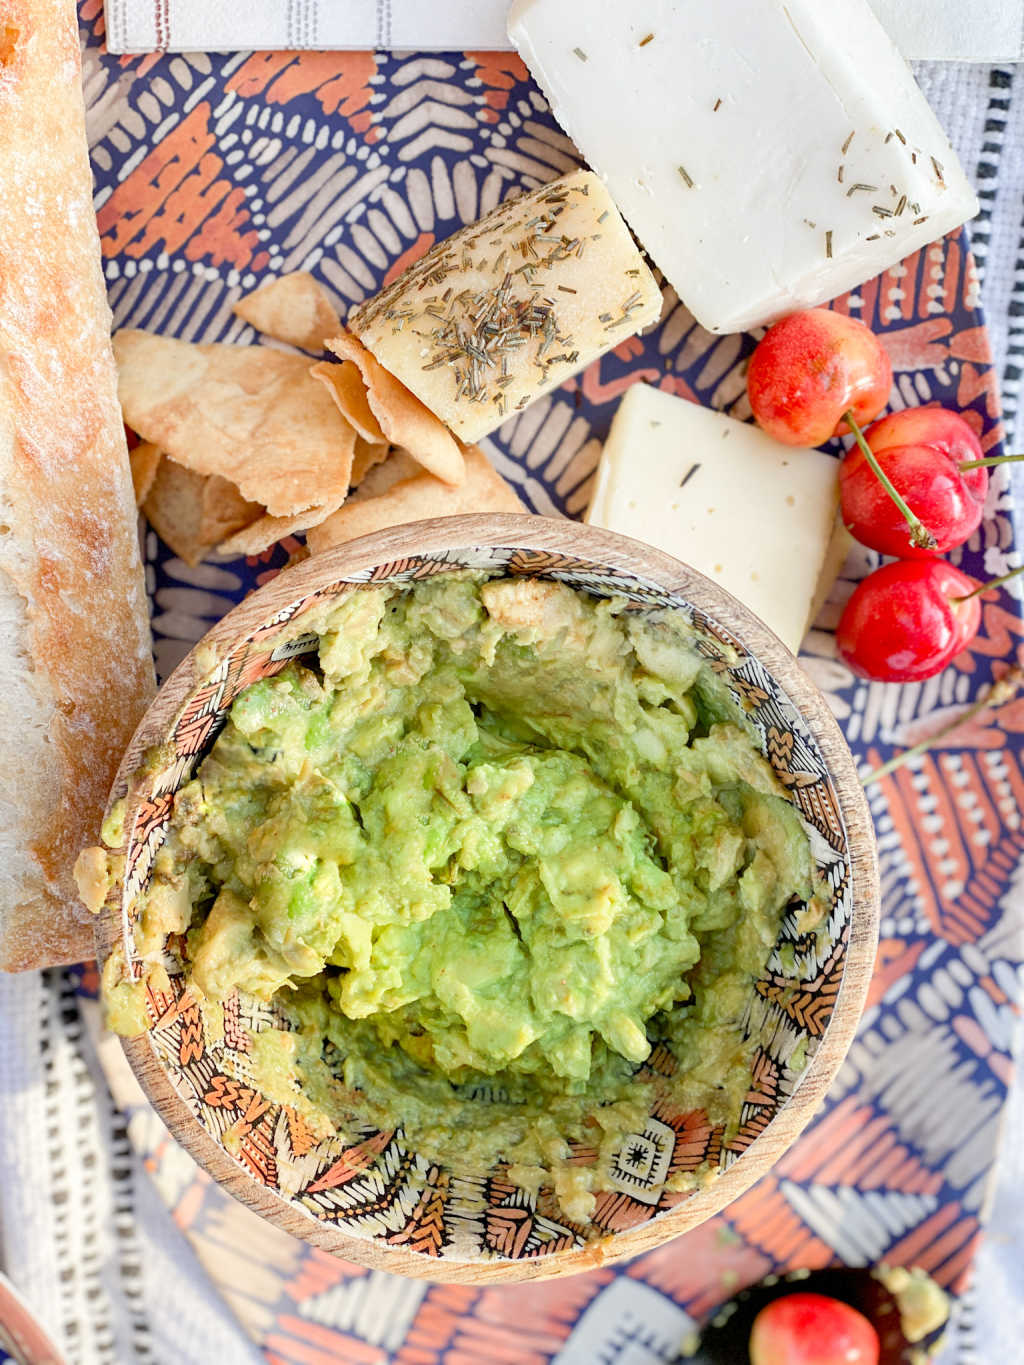 Homemade guacamole for a picnic | Poplolly co